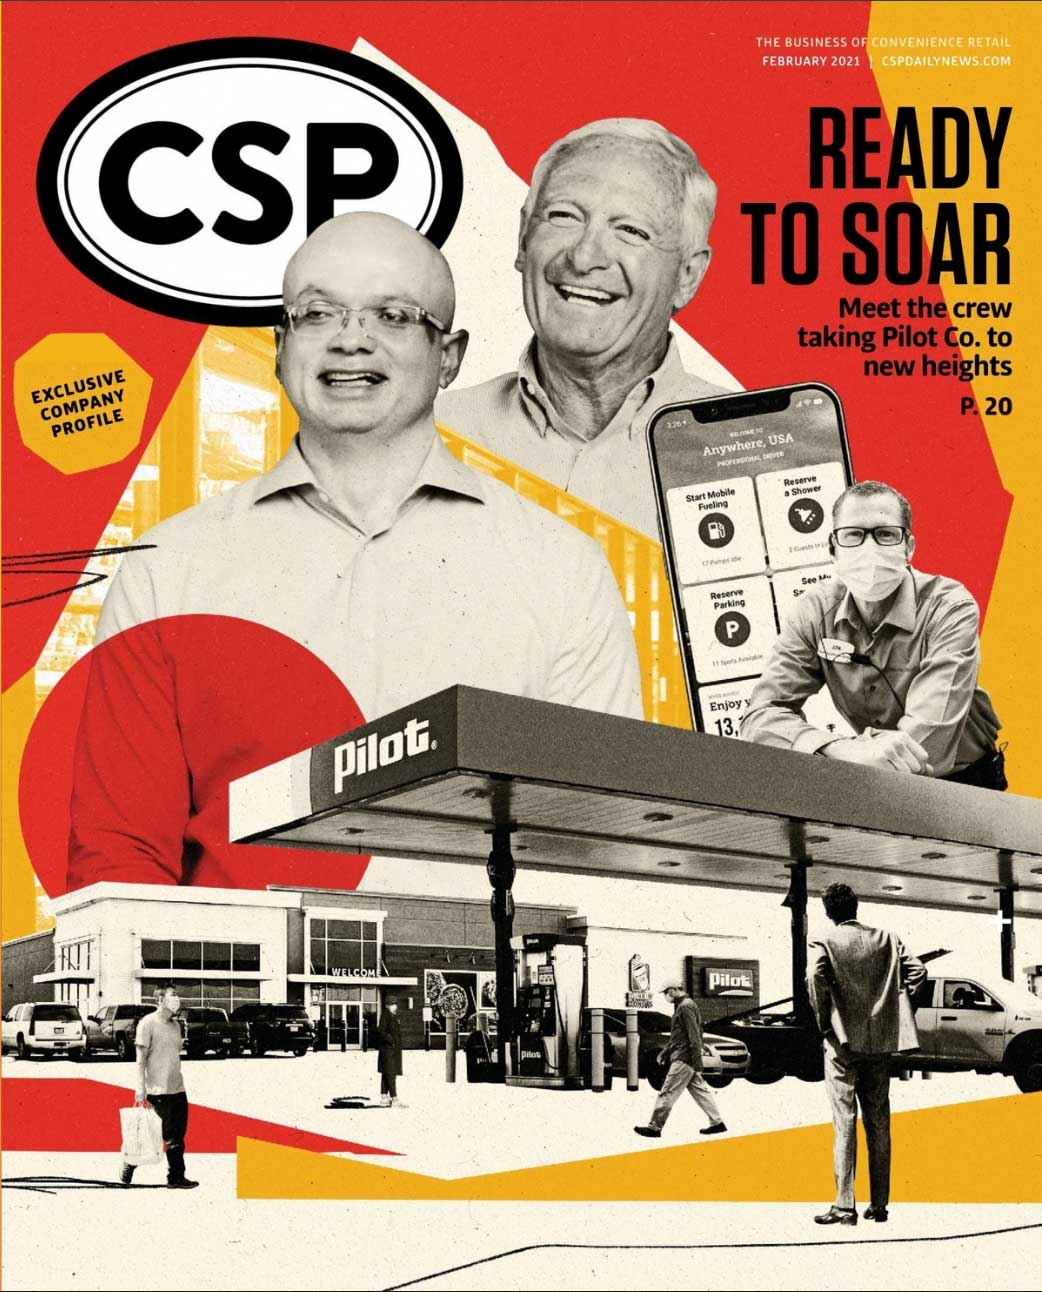 CSP Daily News Magazine Ready to Soar | February 2021 Issue